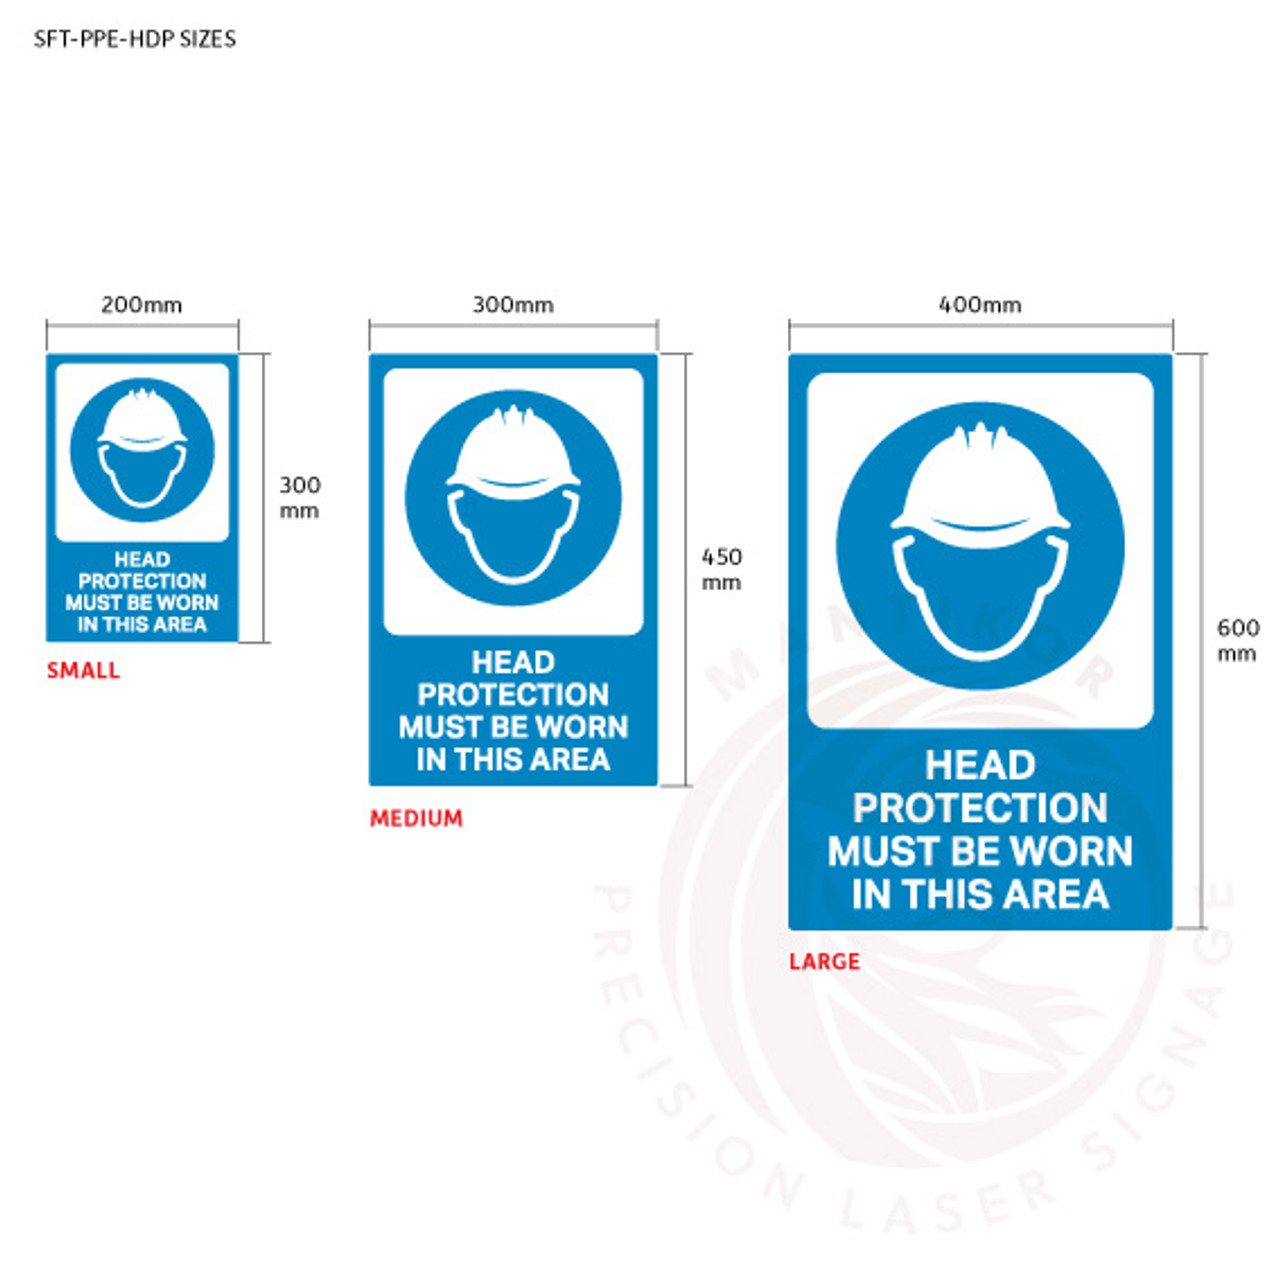 PPE Safety Signage - Head protection sign sizes